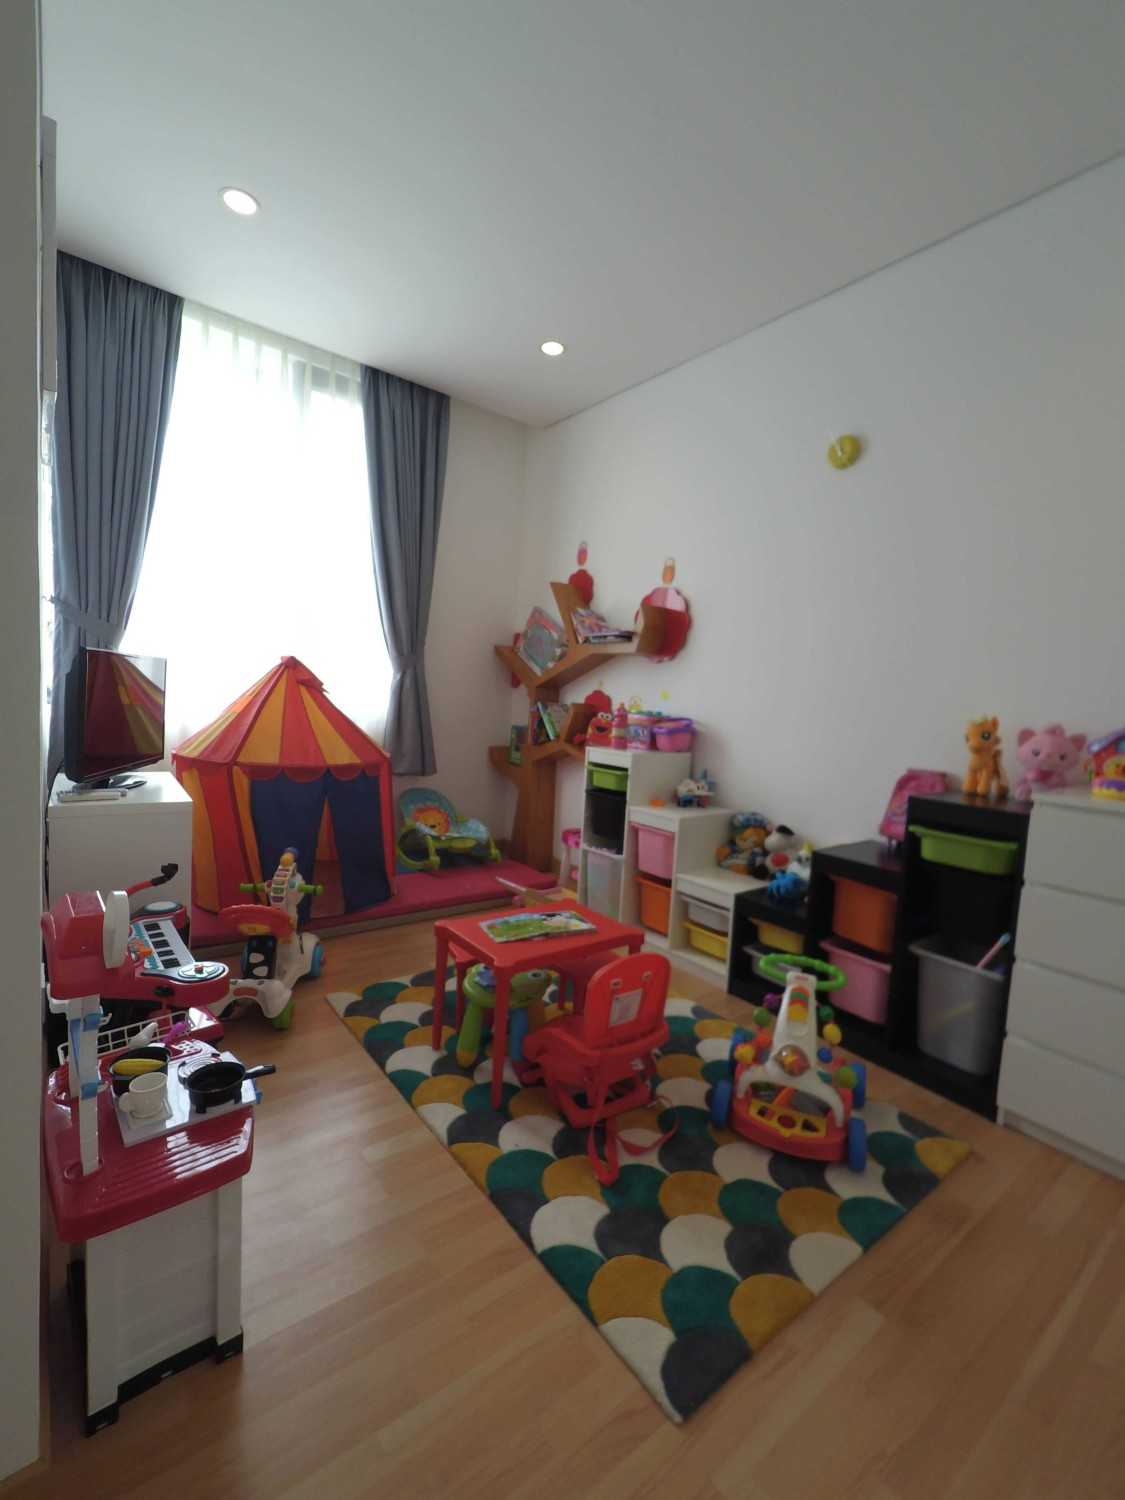 Dezan Studio Interior - Kids Room Pondok Indah Pondok Indah Playing Area  19416